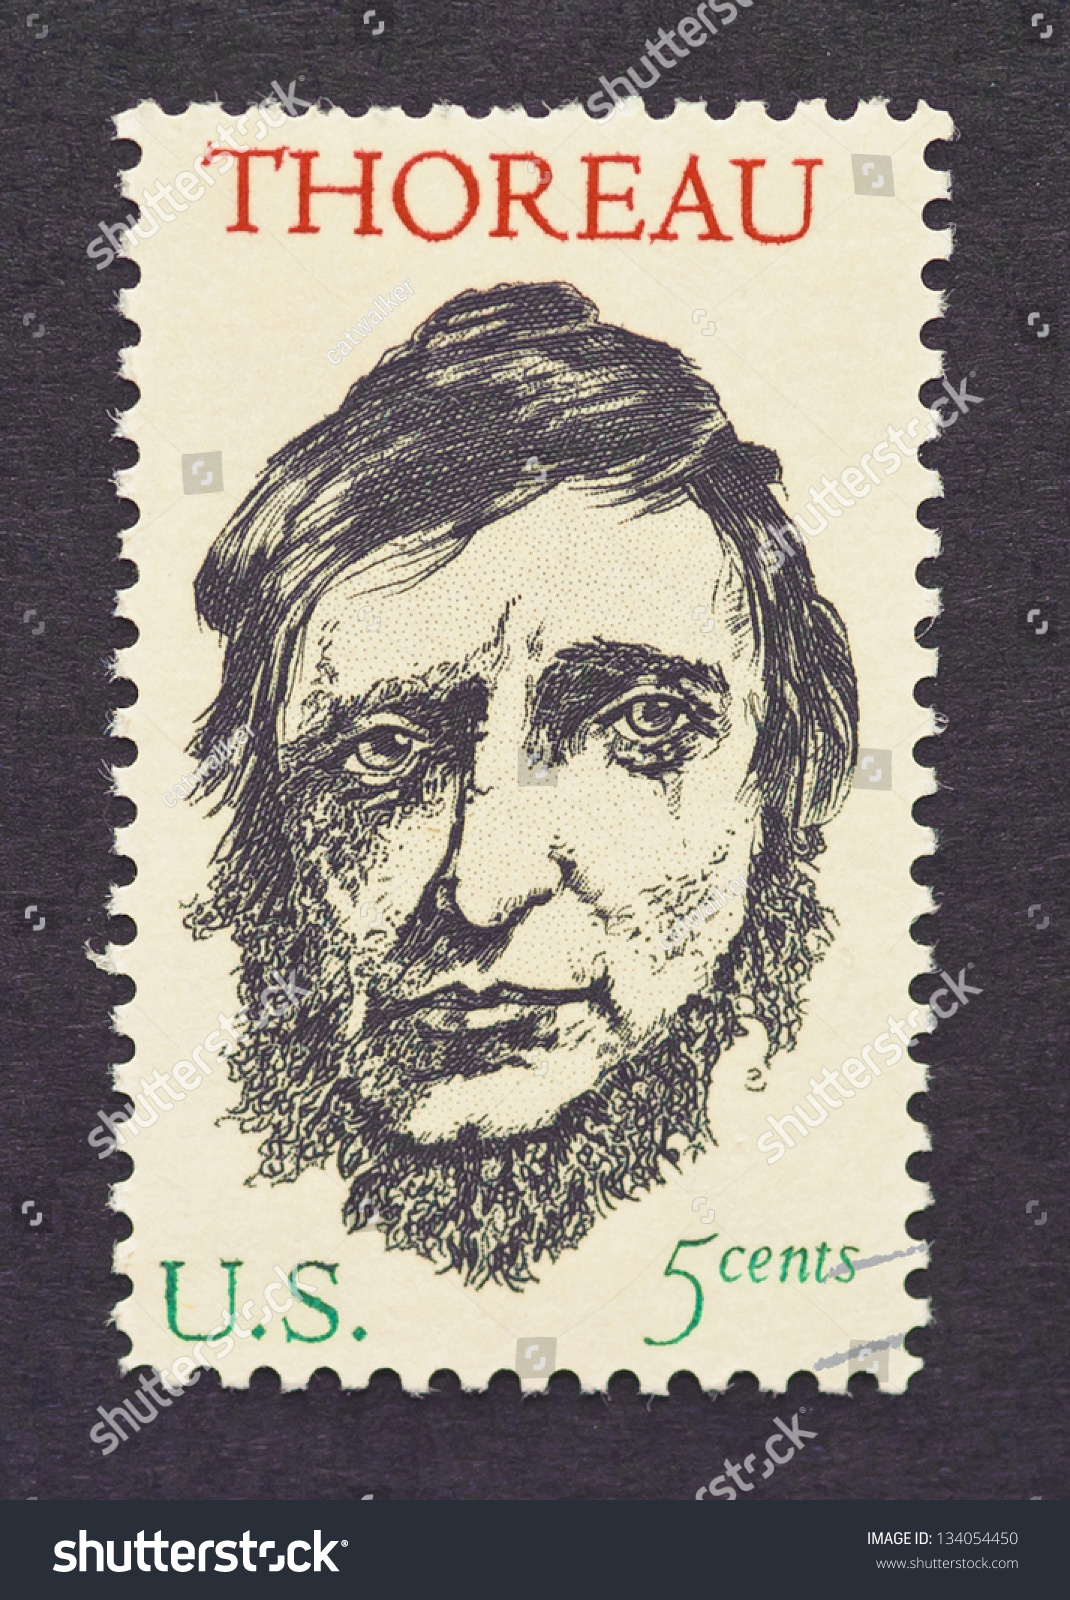 united states and thoreau In the case of the united states was actually found in thoreau's civil disobedience thoreau was apparently paraphrasing the motto of the united states.